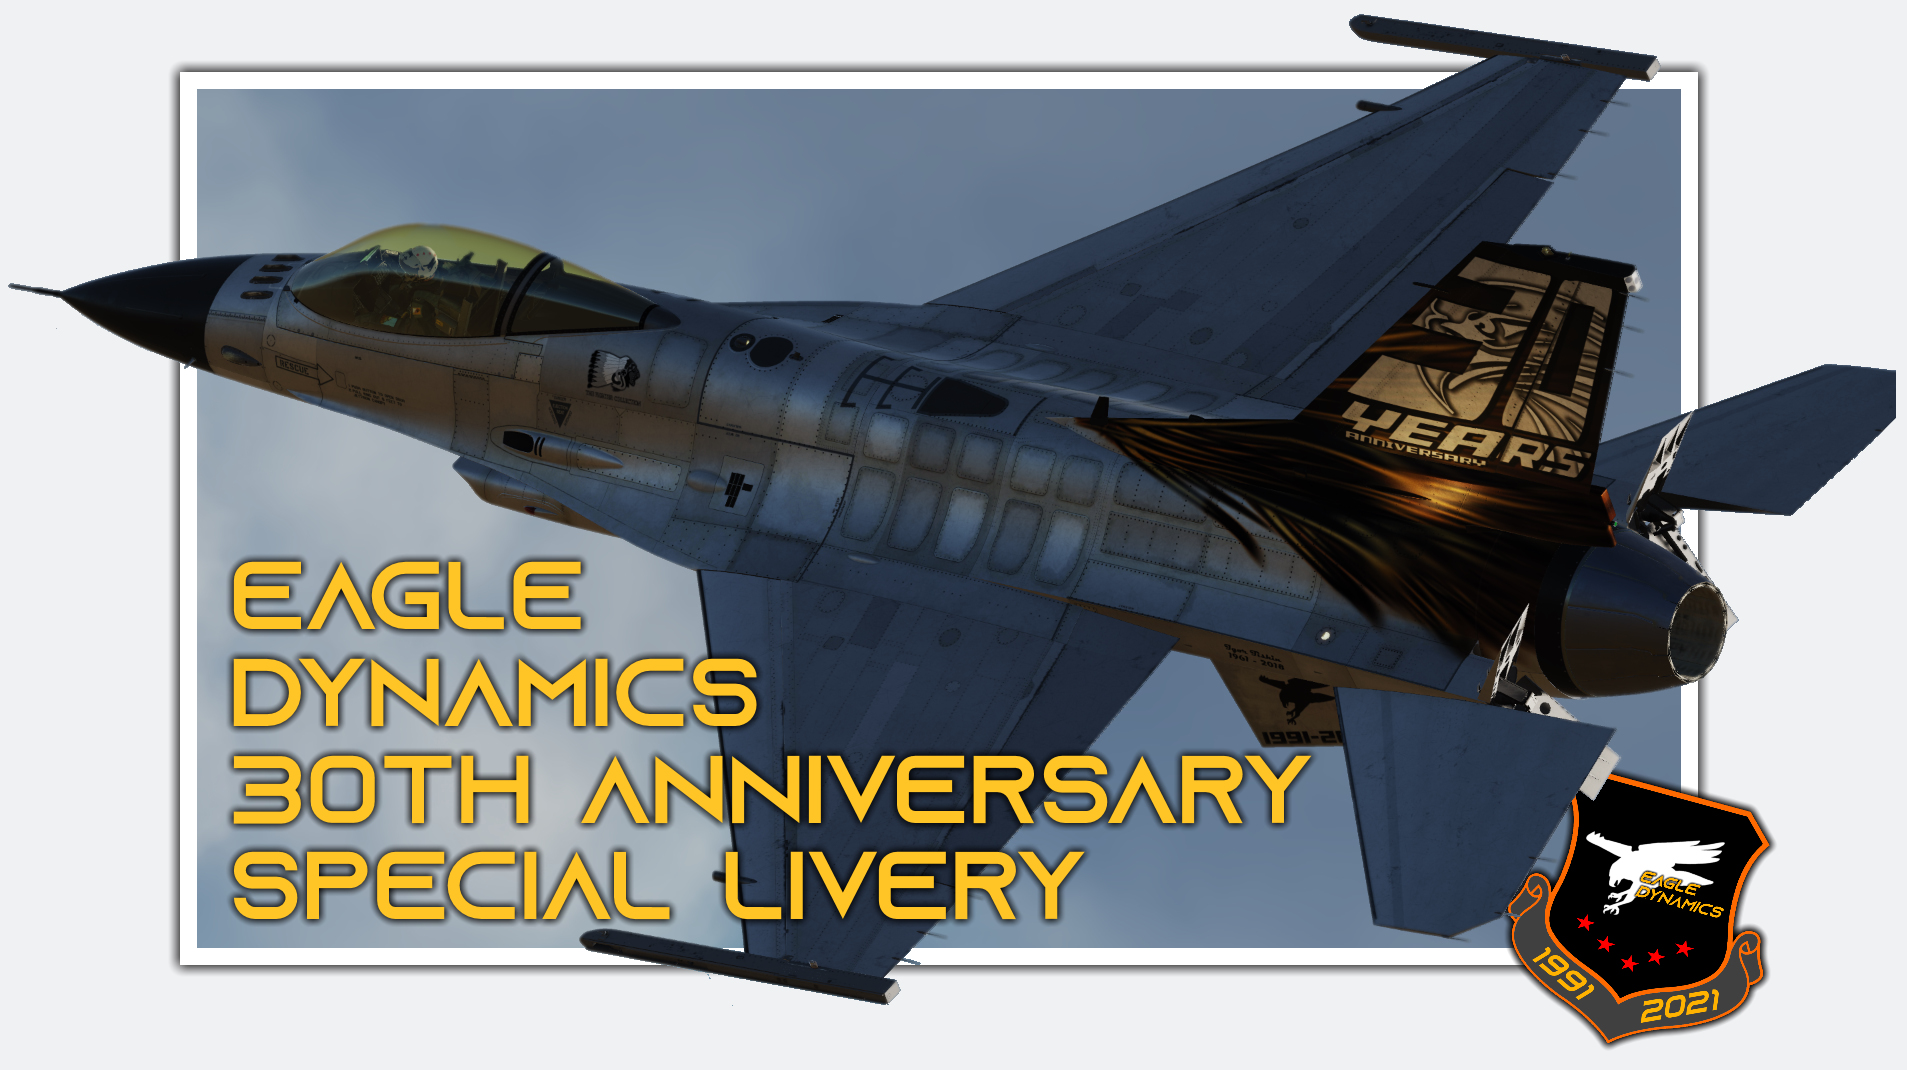 Eagle Dynamics 30th Anniversary Special Livery